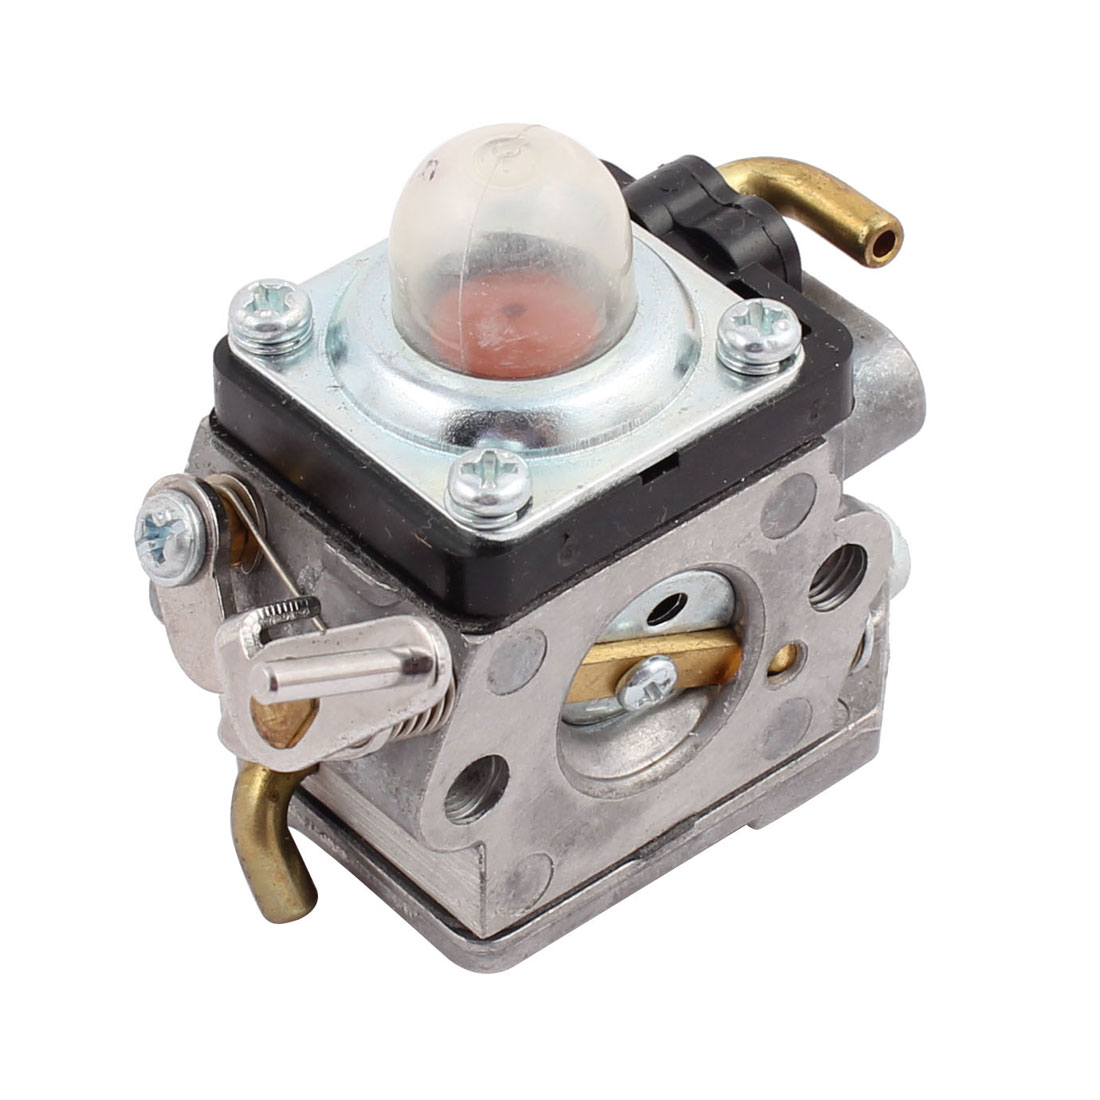 New Carburetor for Chainsaw Parts Lawn Mower 122HD45 122HD60